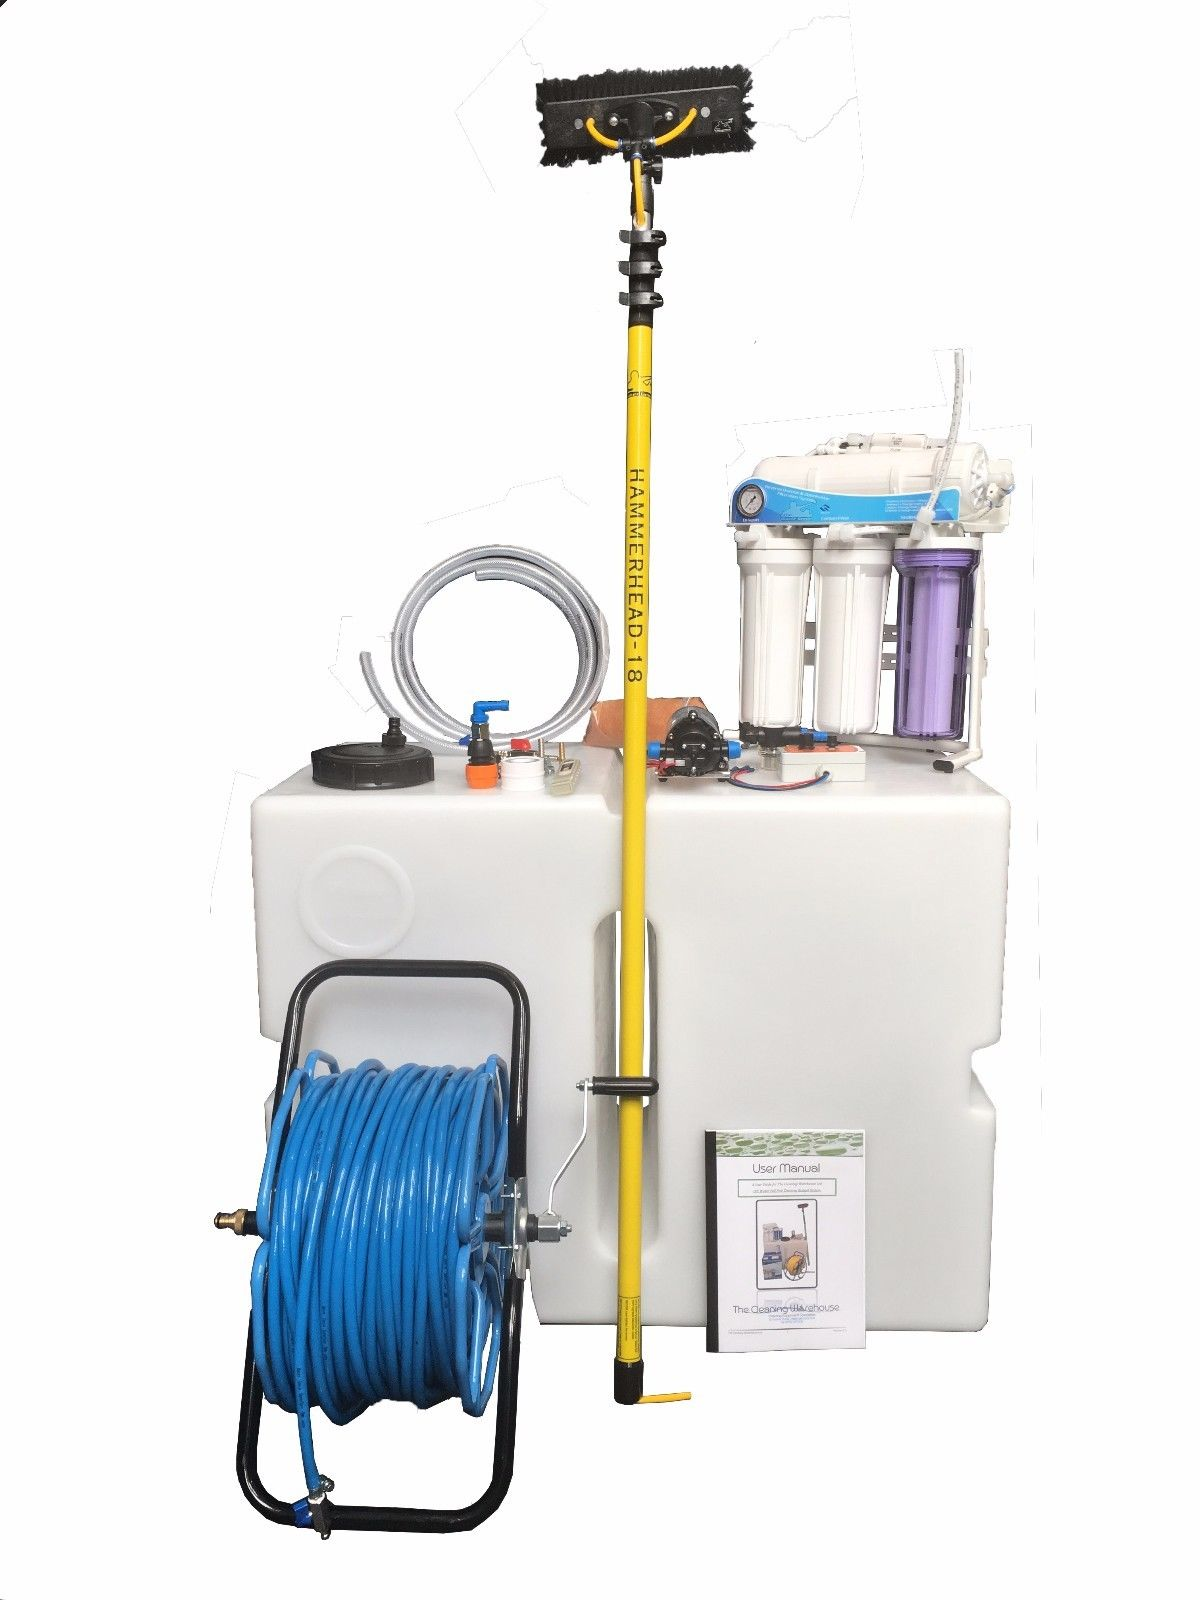 Build Your Own Ro Waterfed Pole Kit